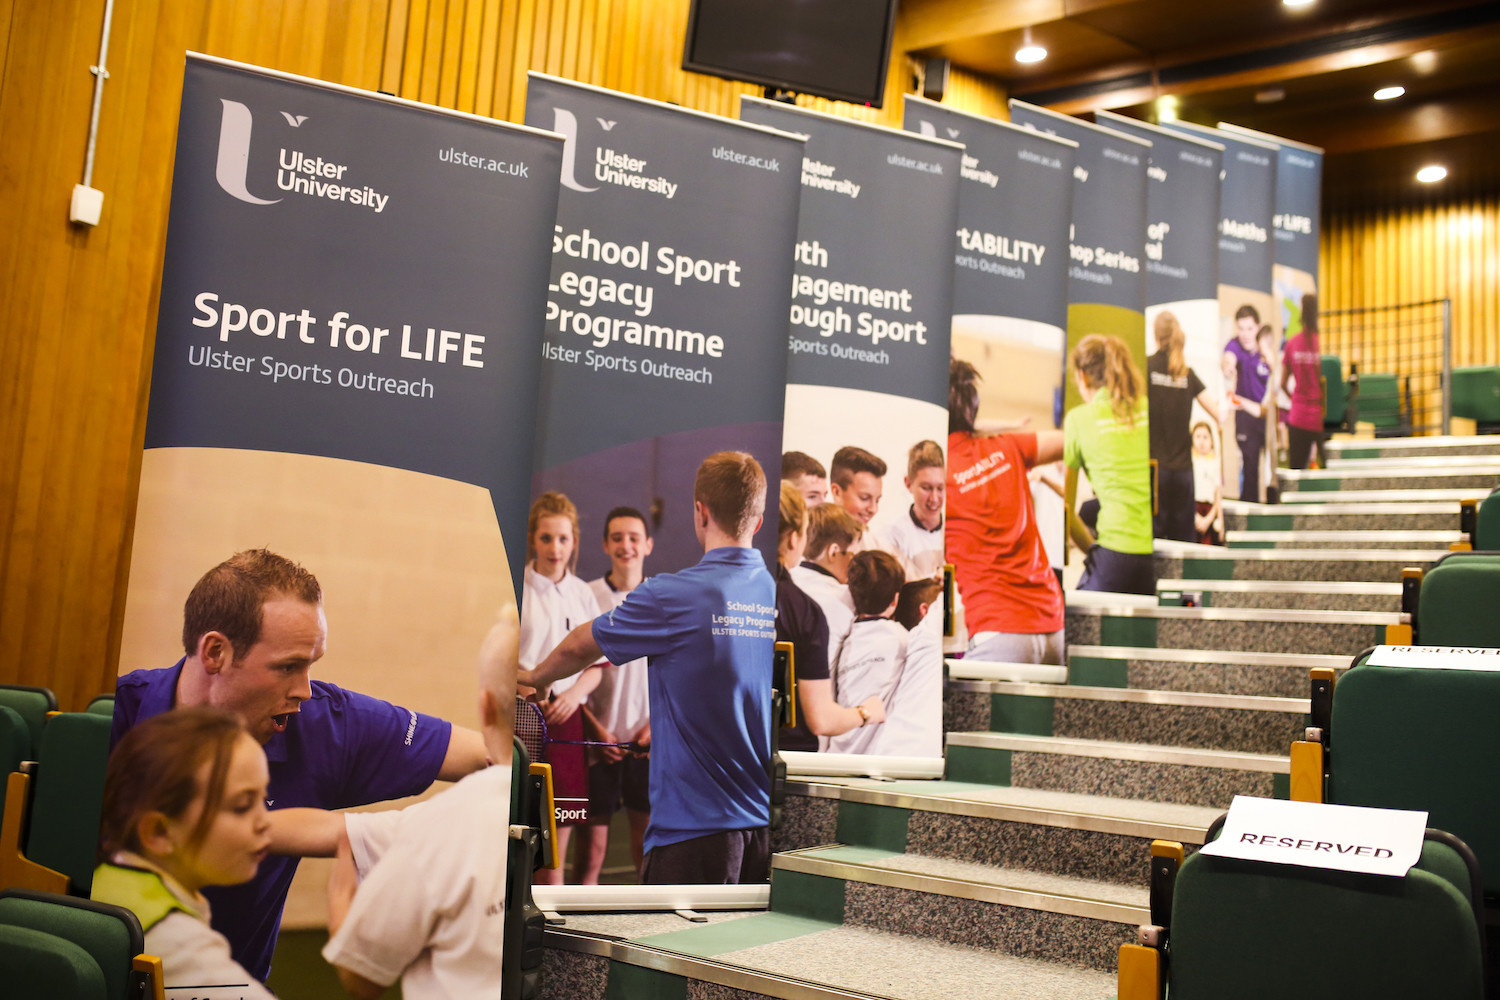 Sports outreach at Ulster University, one of six new additions to FISU's Healthy Campus programme ©FISU